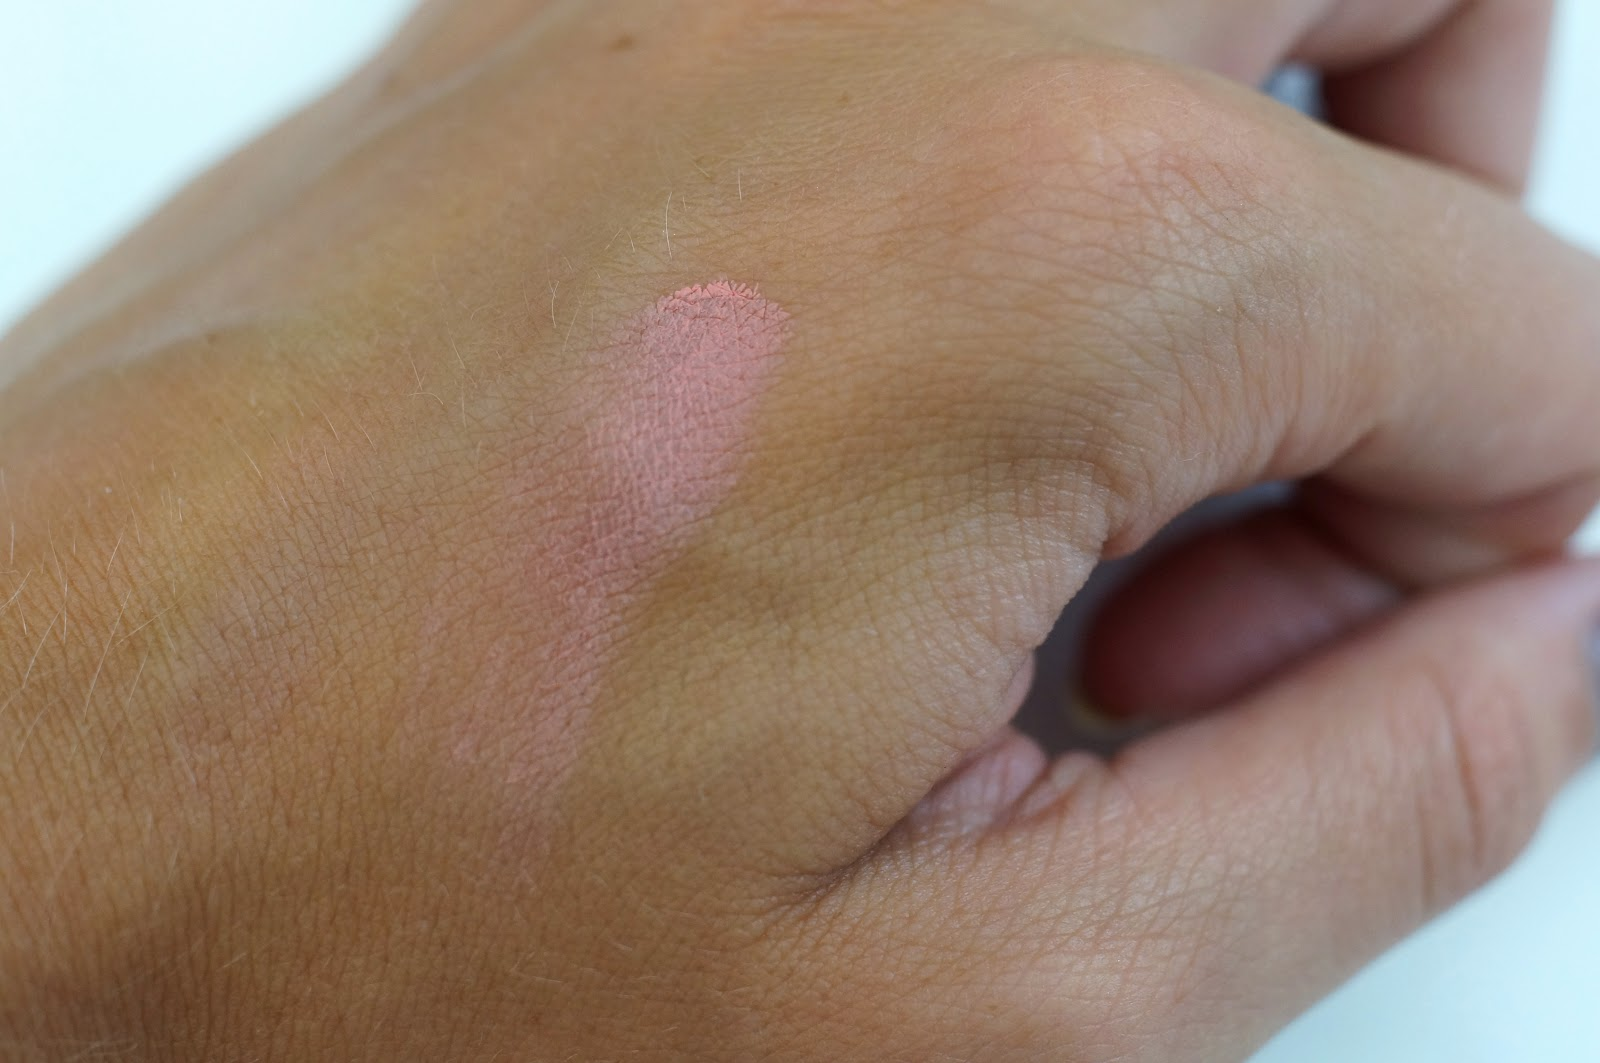 bourjois cream blush 01 swatch